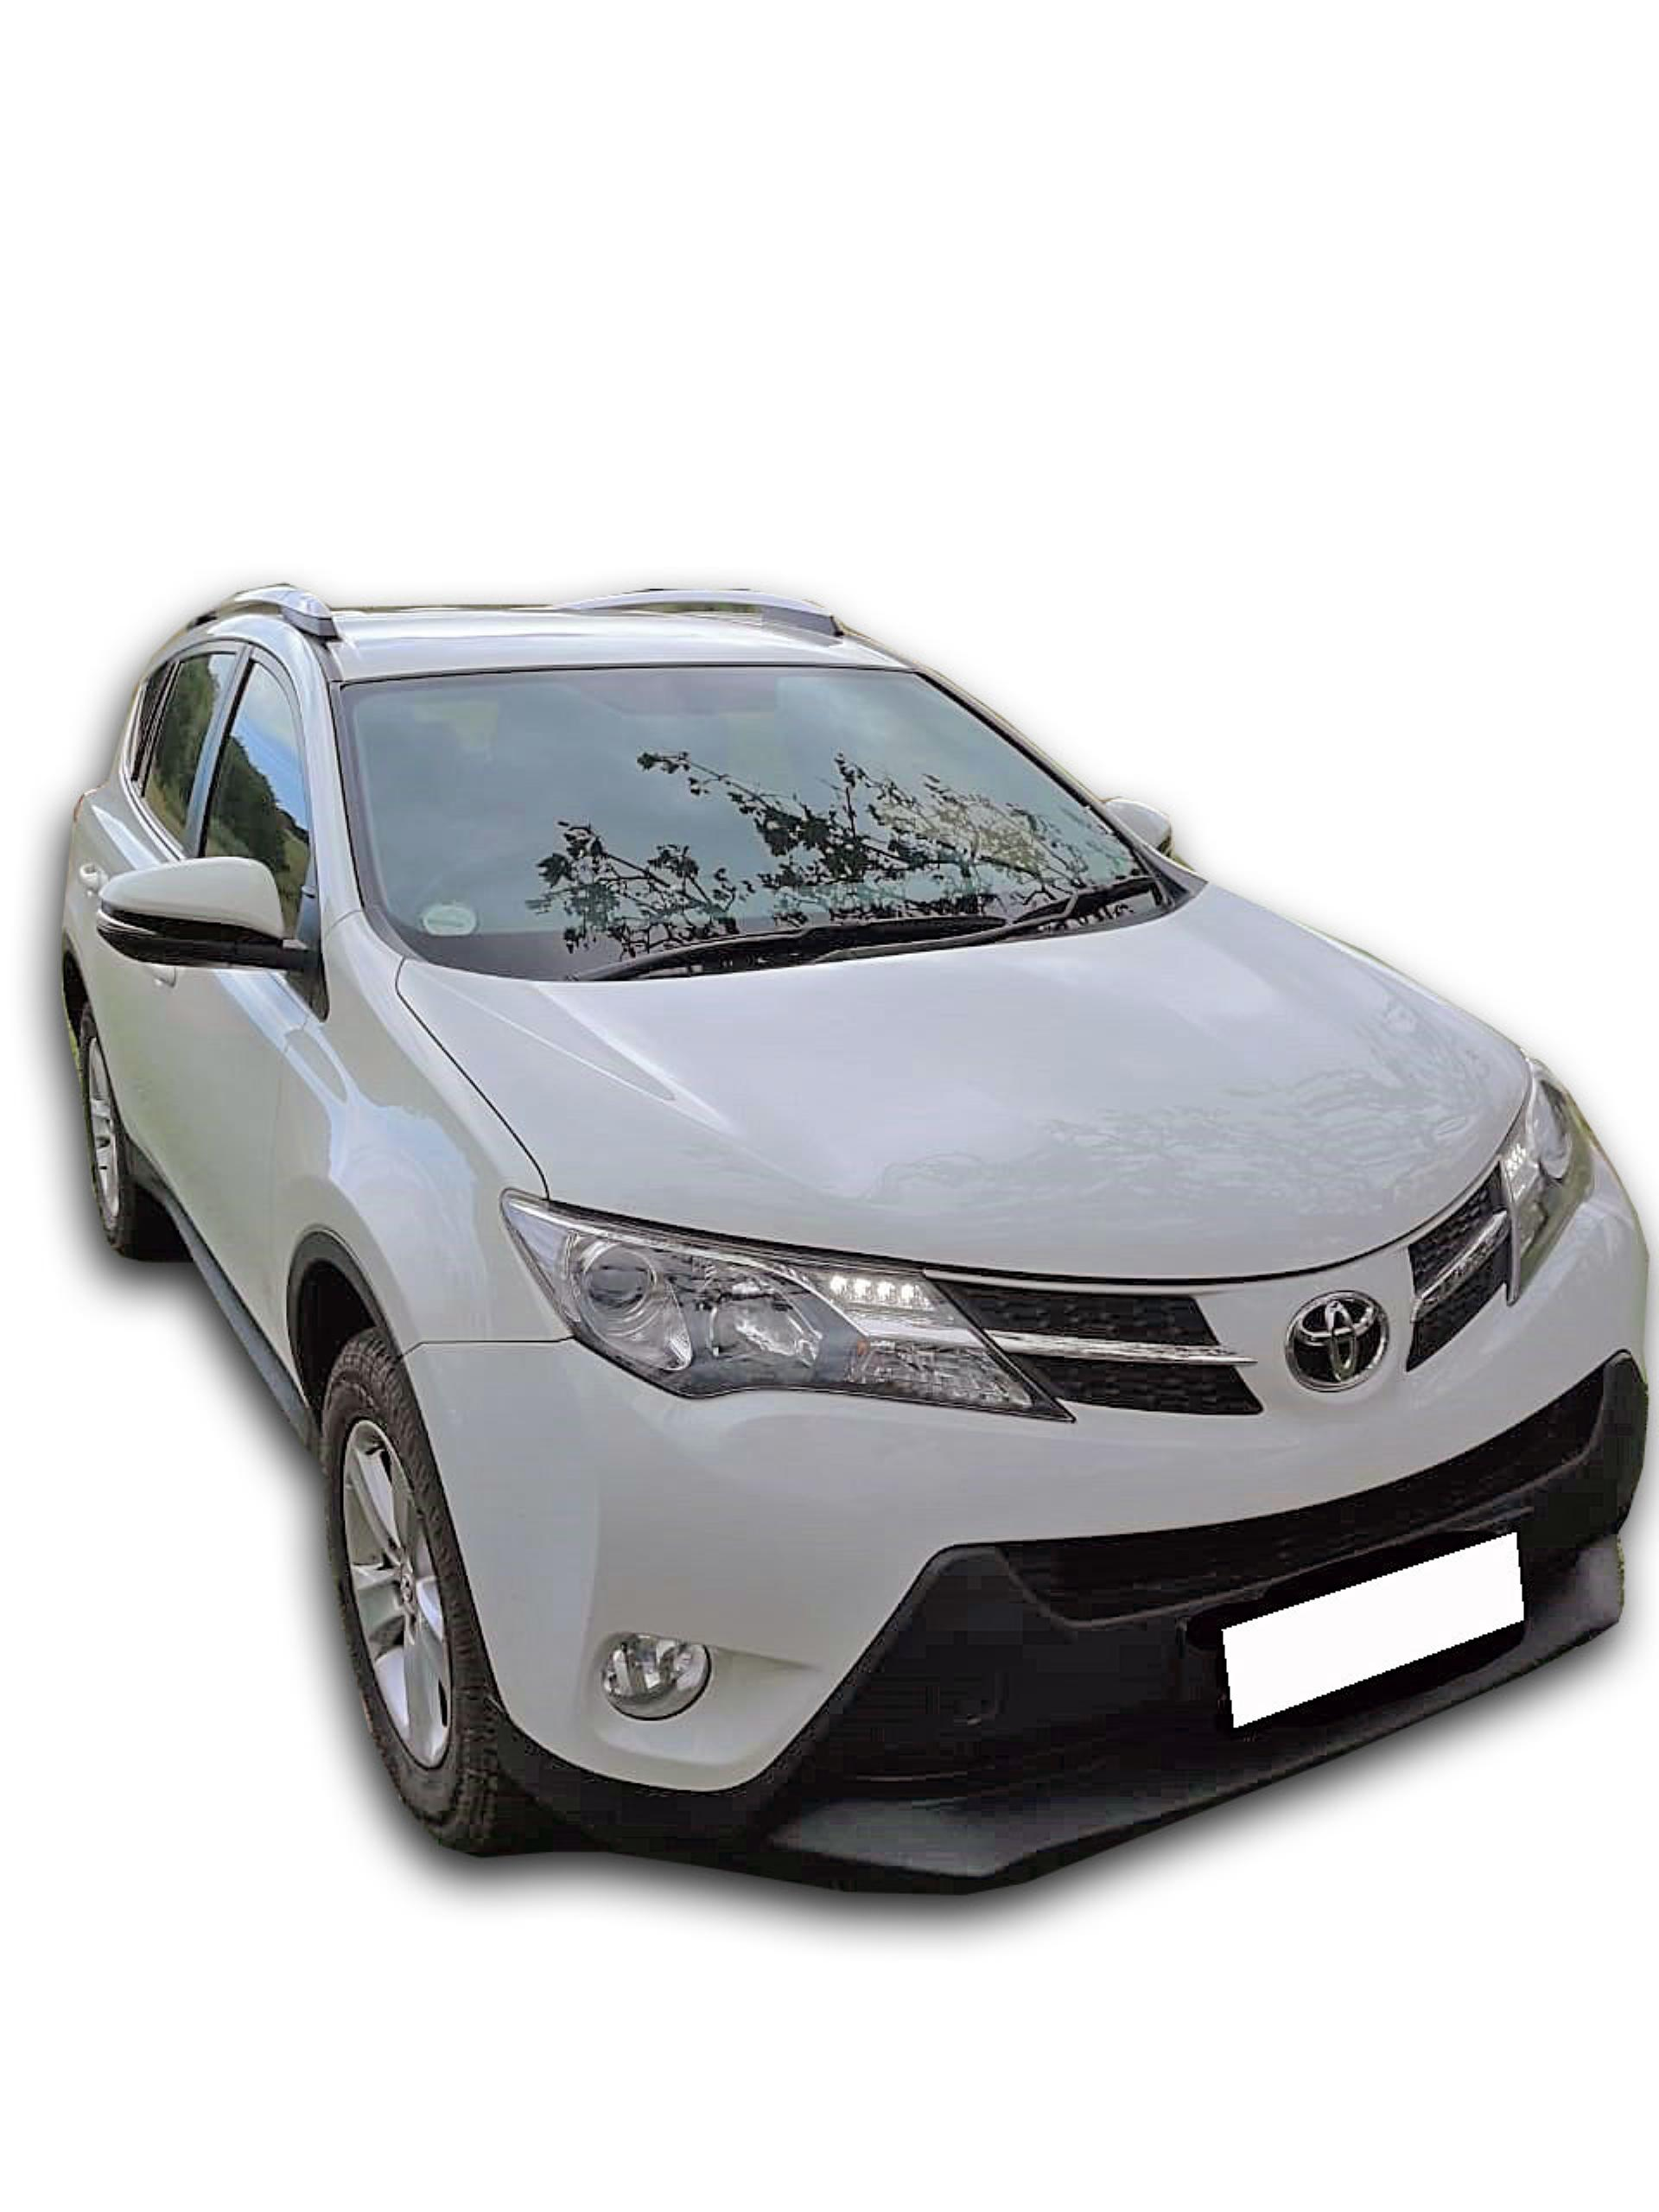 Toyota Rav 4 2.2 D4-D GX All Wheel Drive